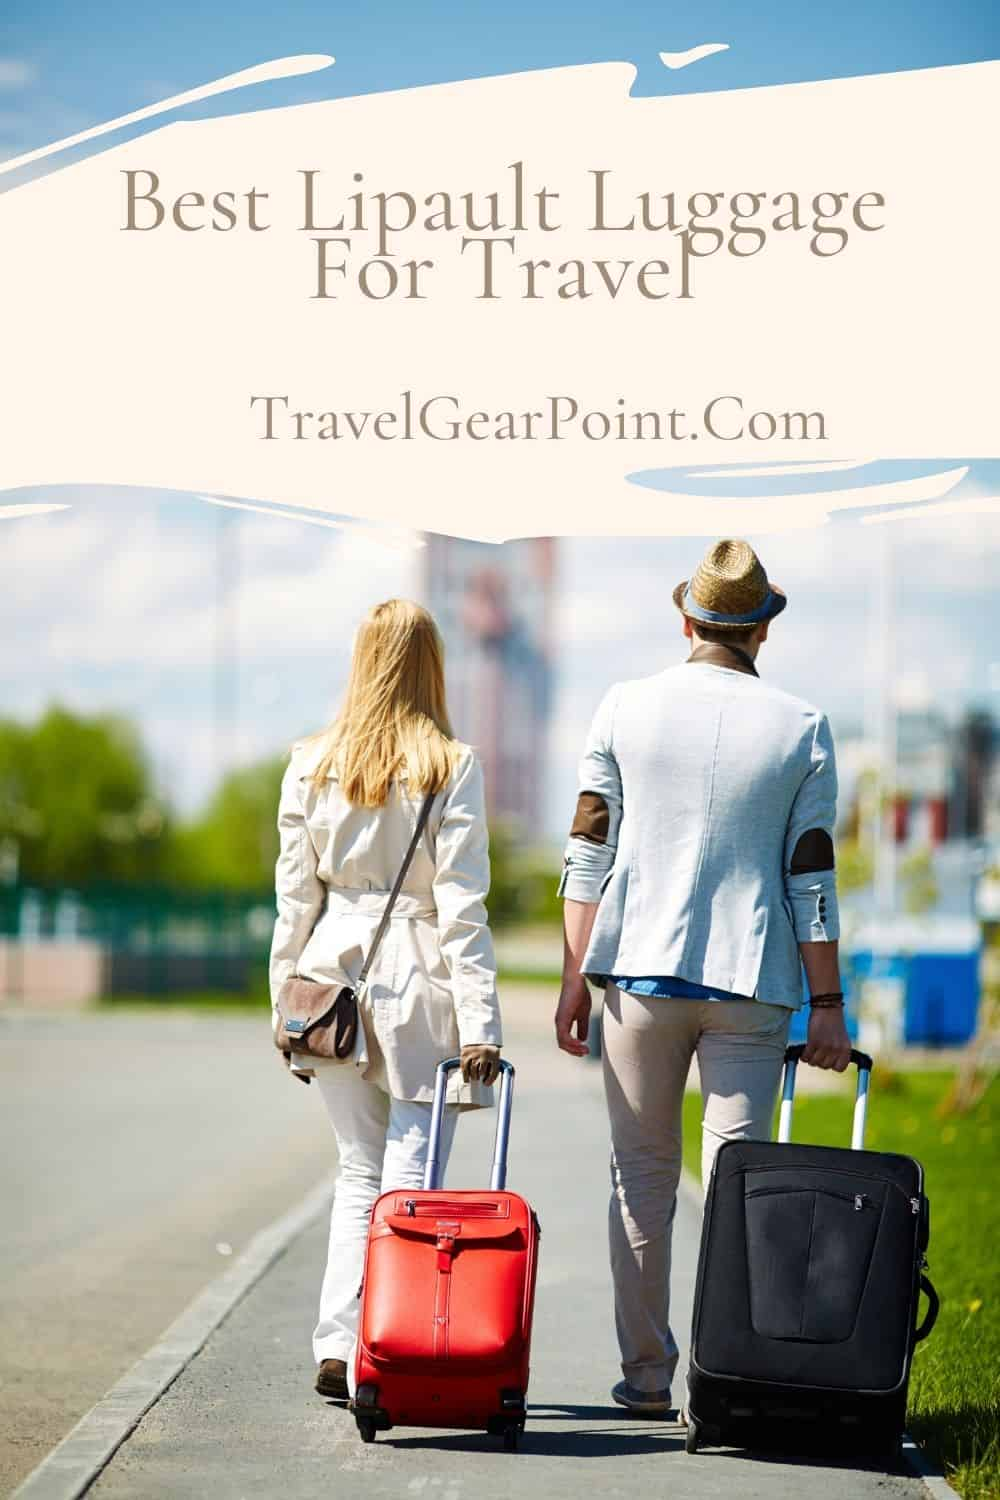 Best Lipault Luggage For Travel